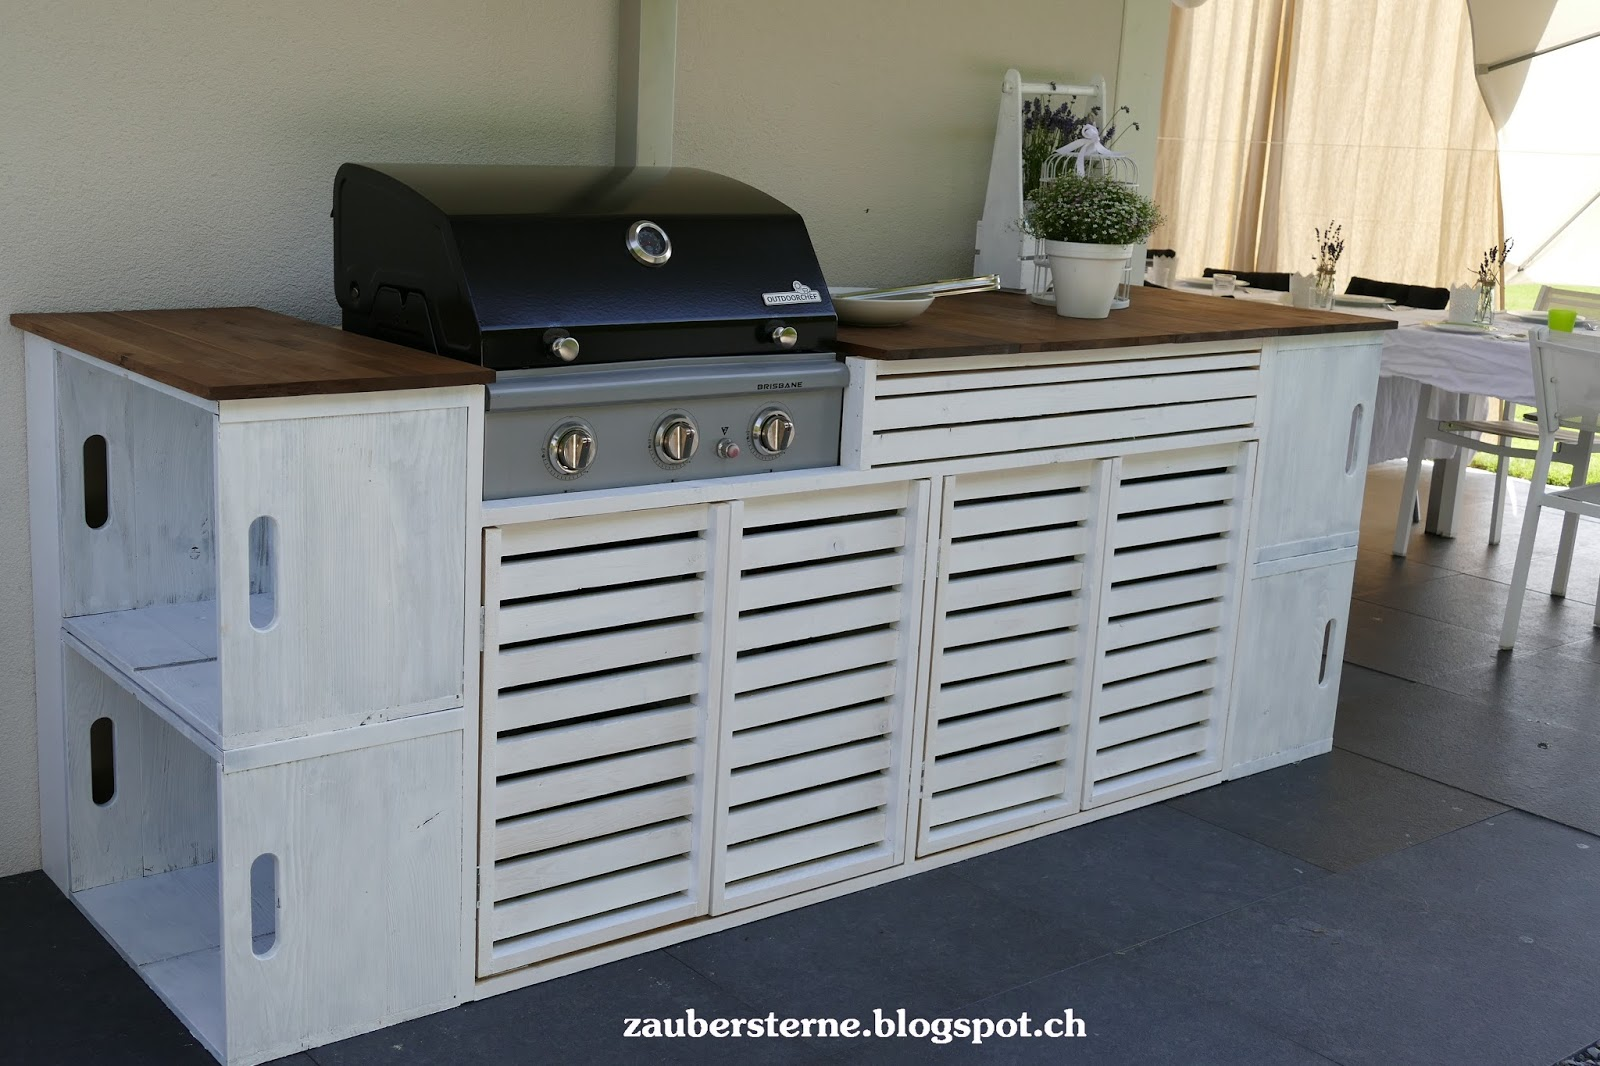 blog schweiz diy outdoork che draussen ist es am sch nsten. Black Bedroom Furniture Sets. Home Design Ideas